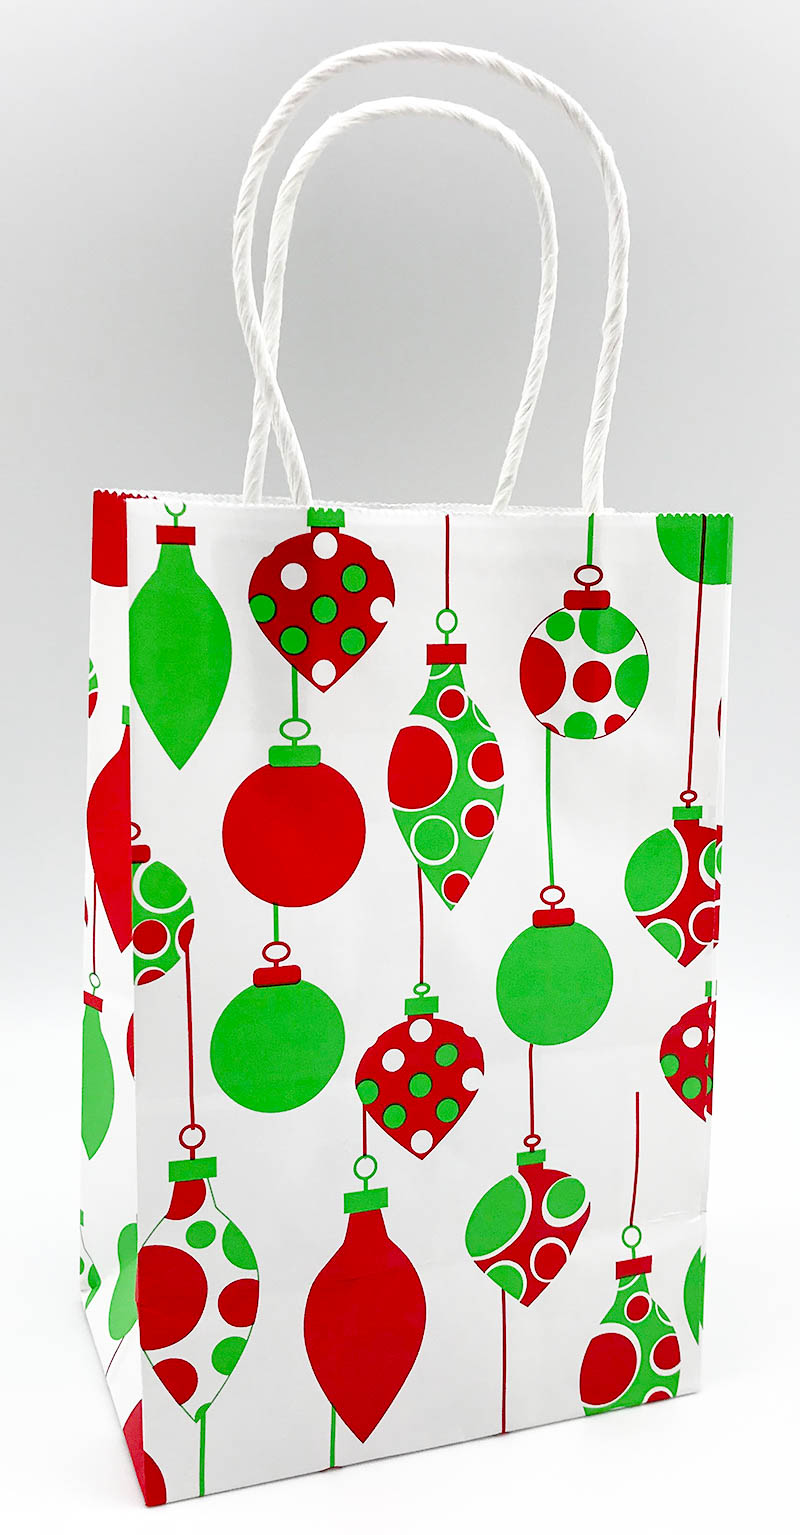 Polka Dot Holiday - Ornaments